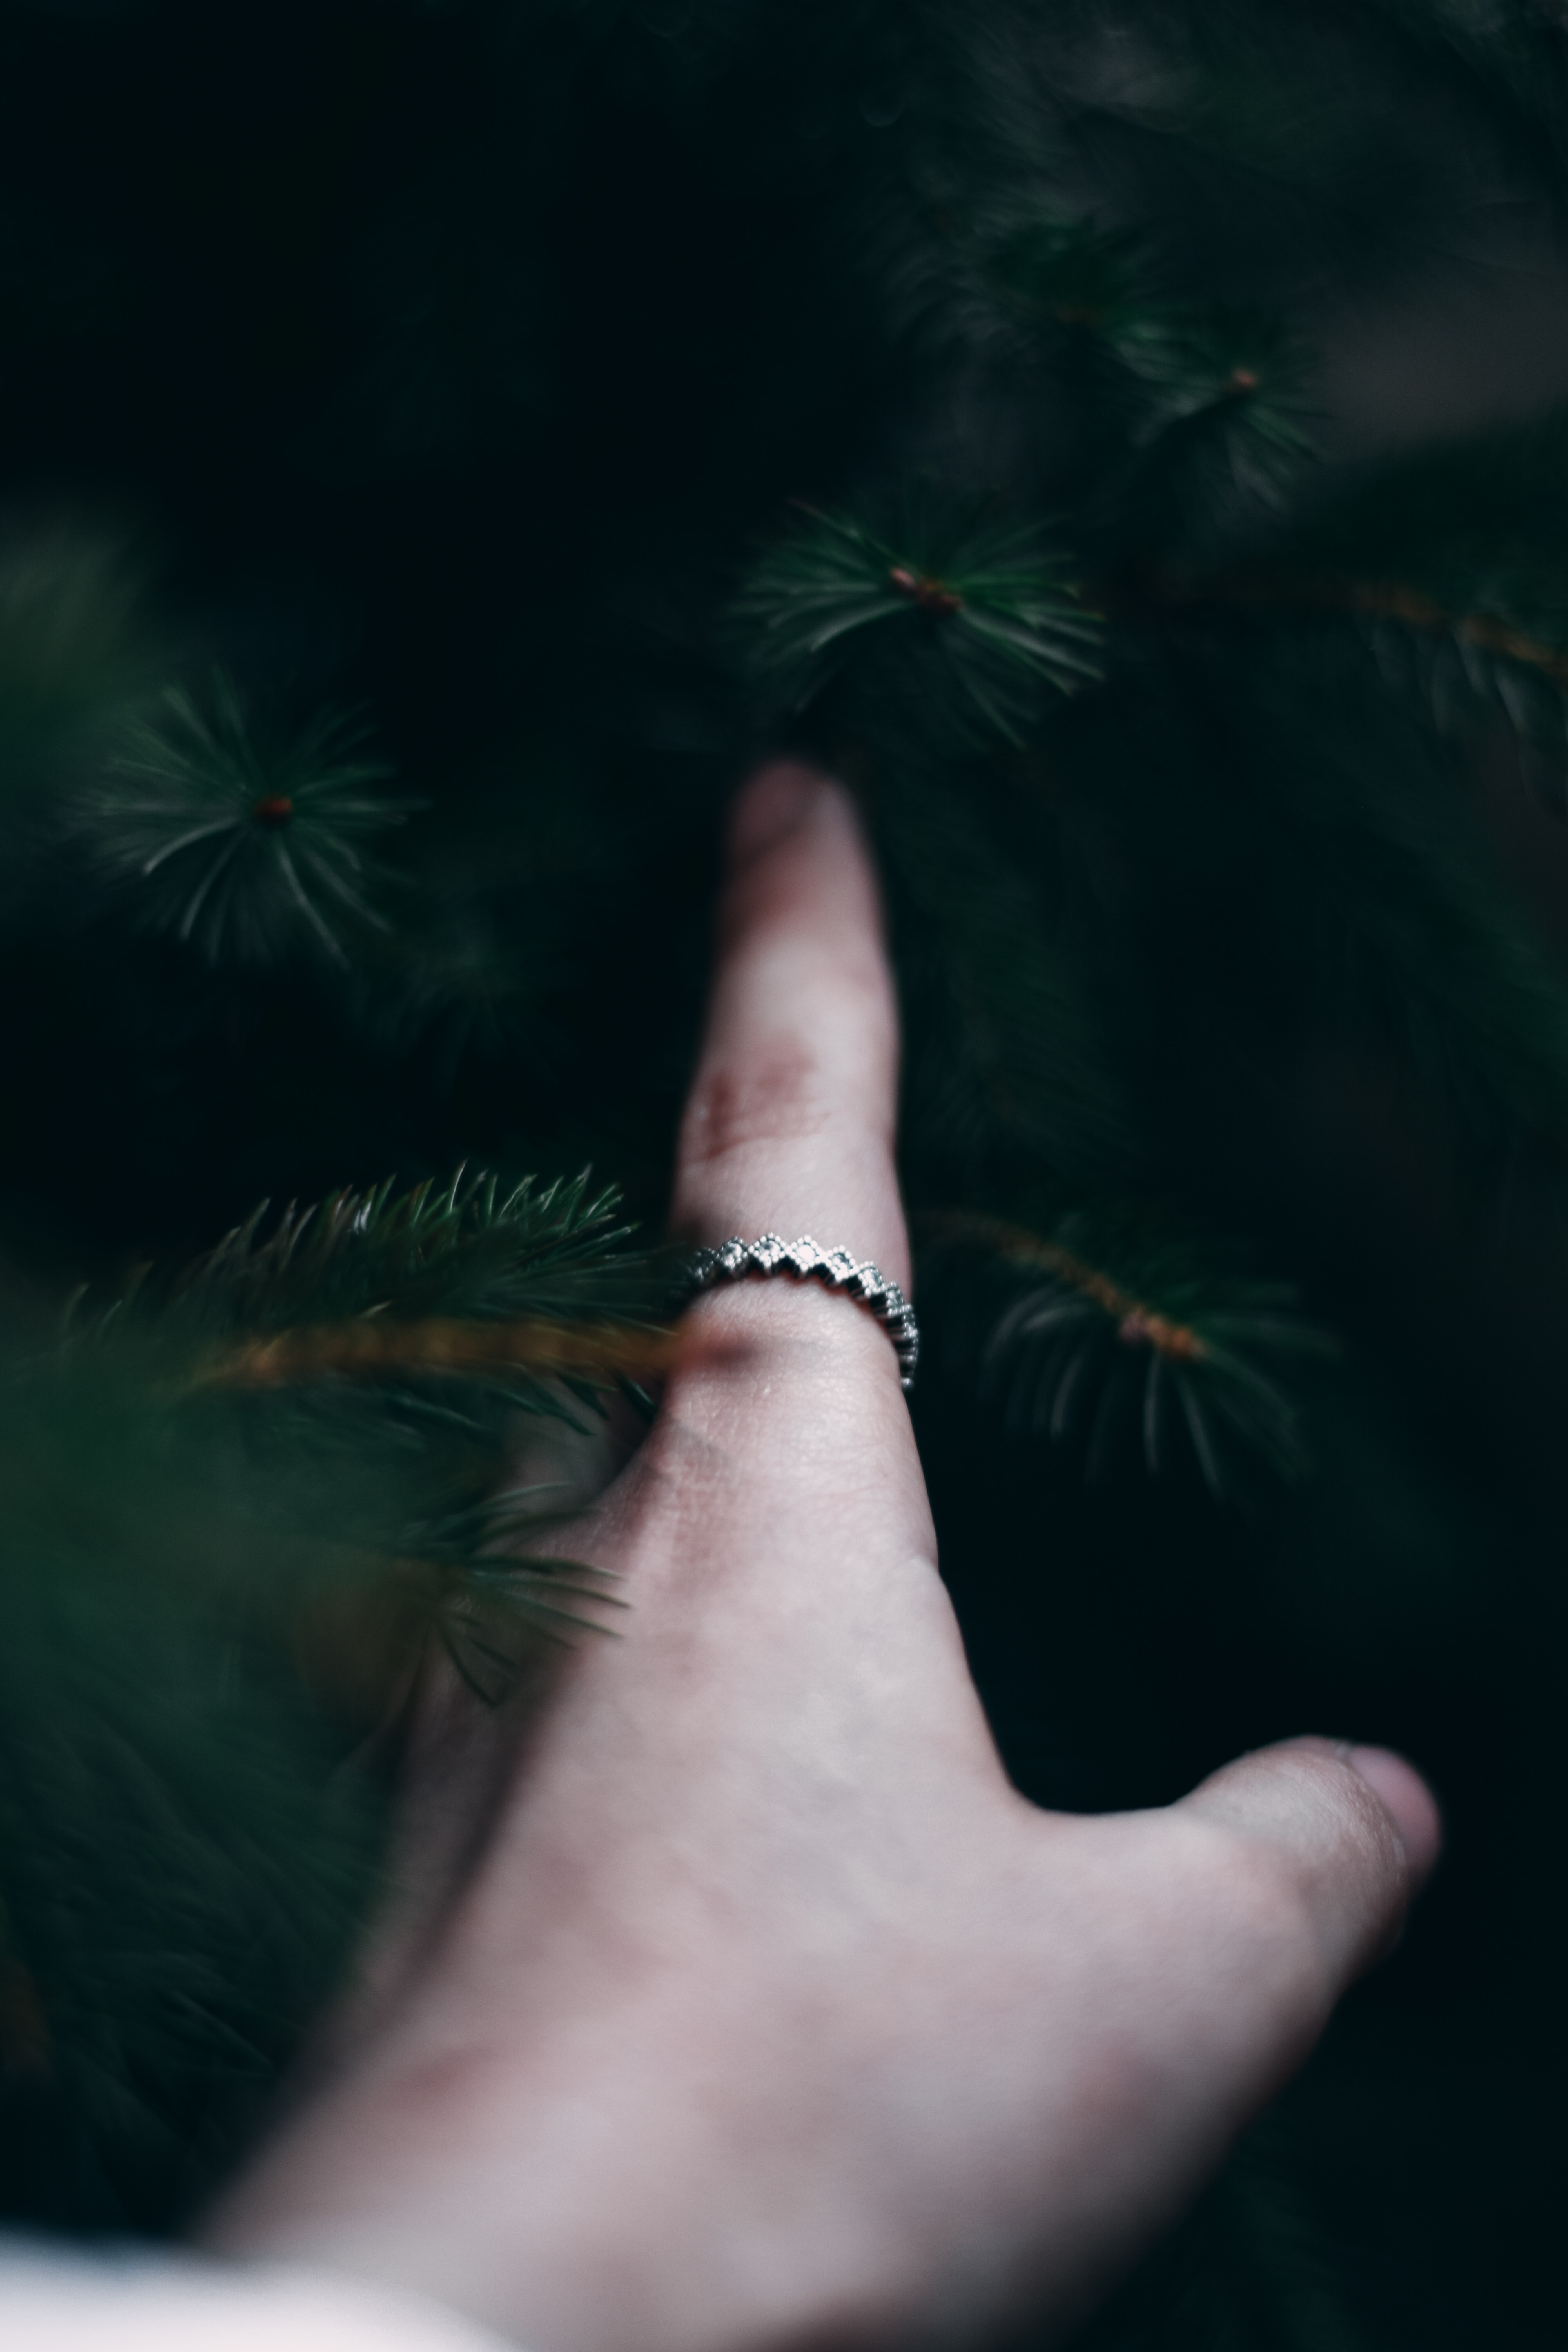 139827 download wallpaper Miscellanea, Miscellaneous, Hand, Branches, Spruce, Fir, Finger, Touching, Touch screensavers and pictures for free